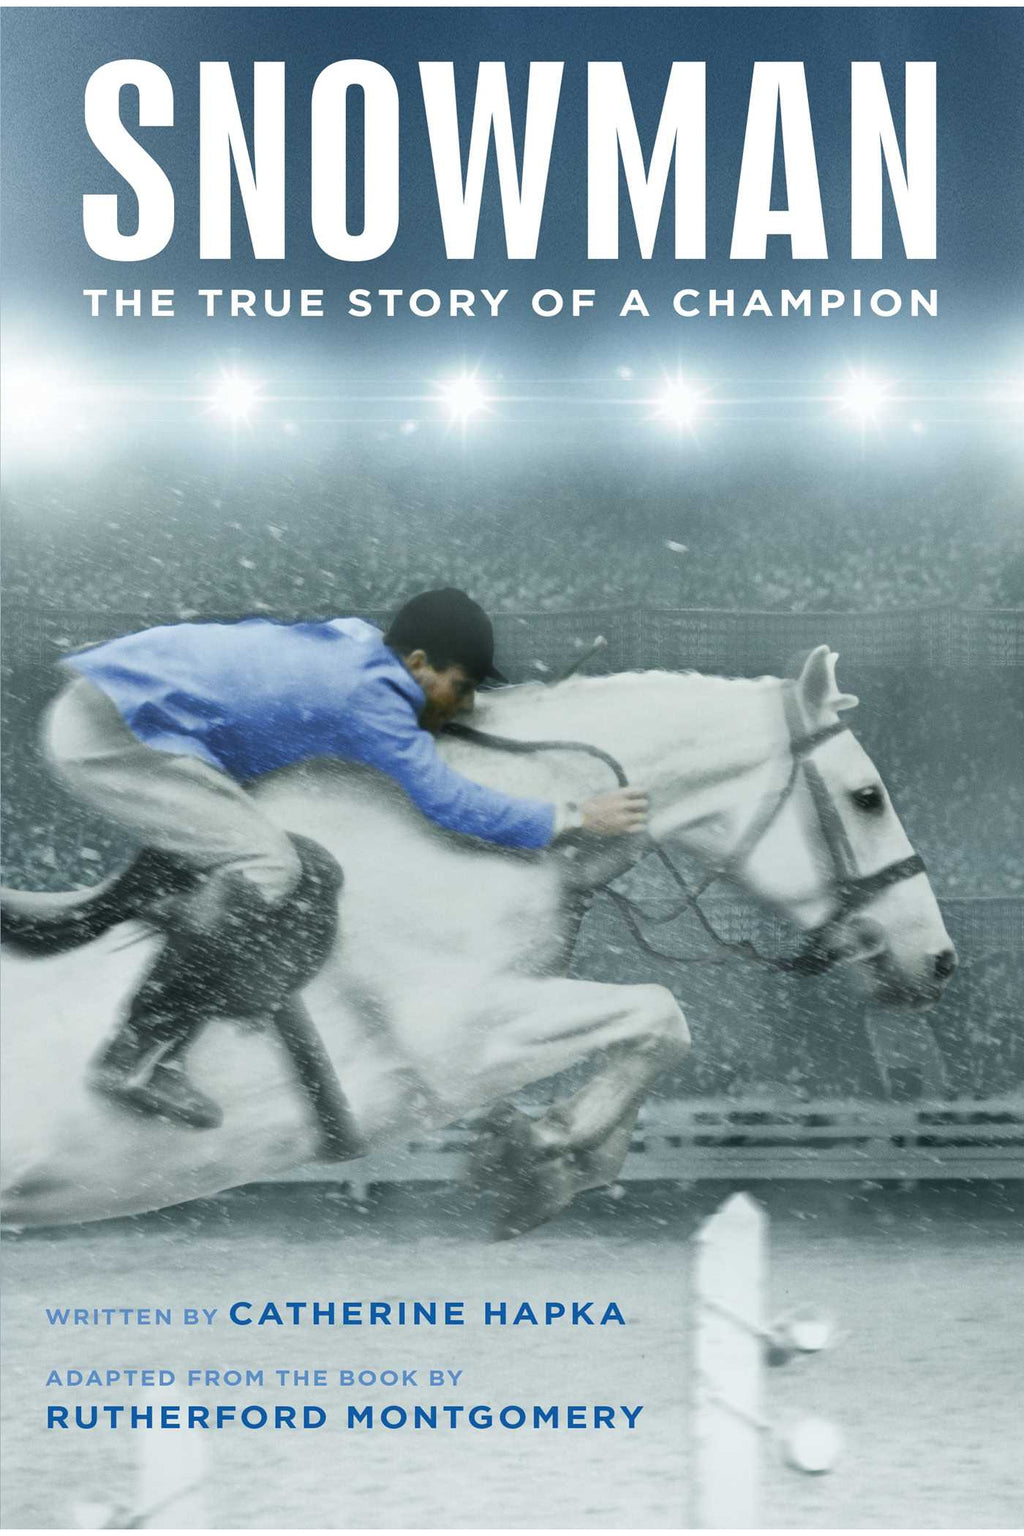 Book - Snowman - Kentucky Horse Park